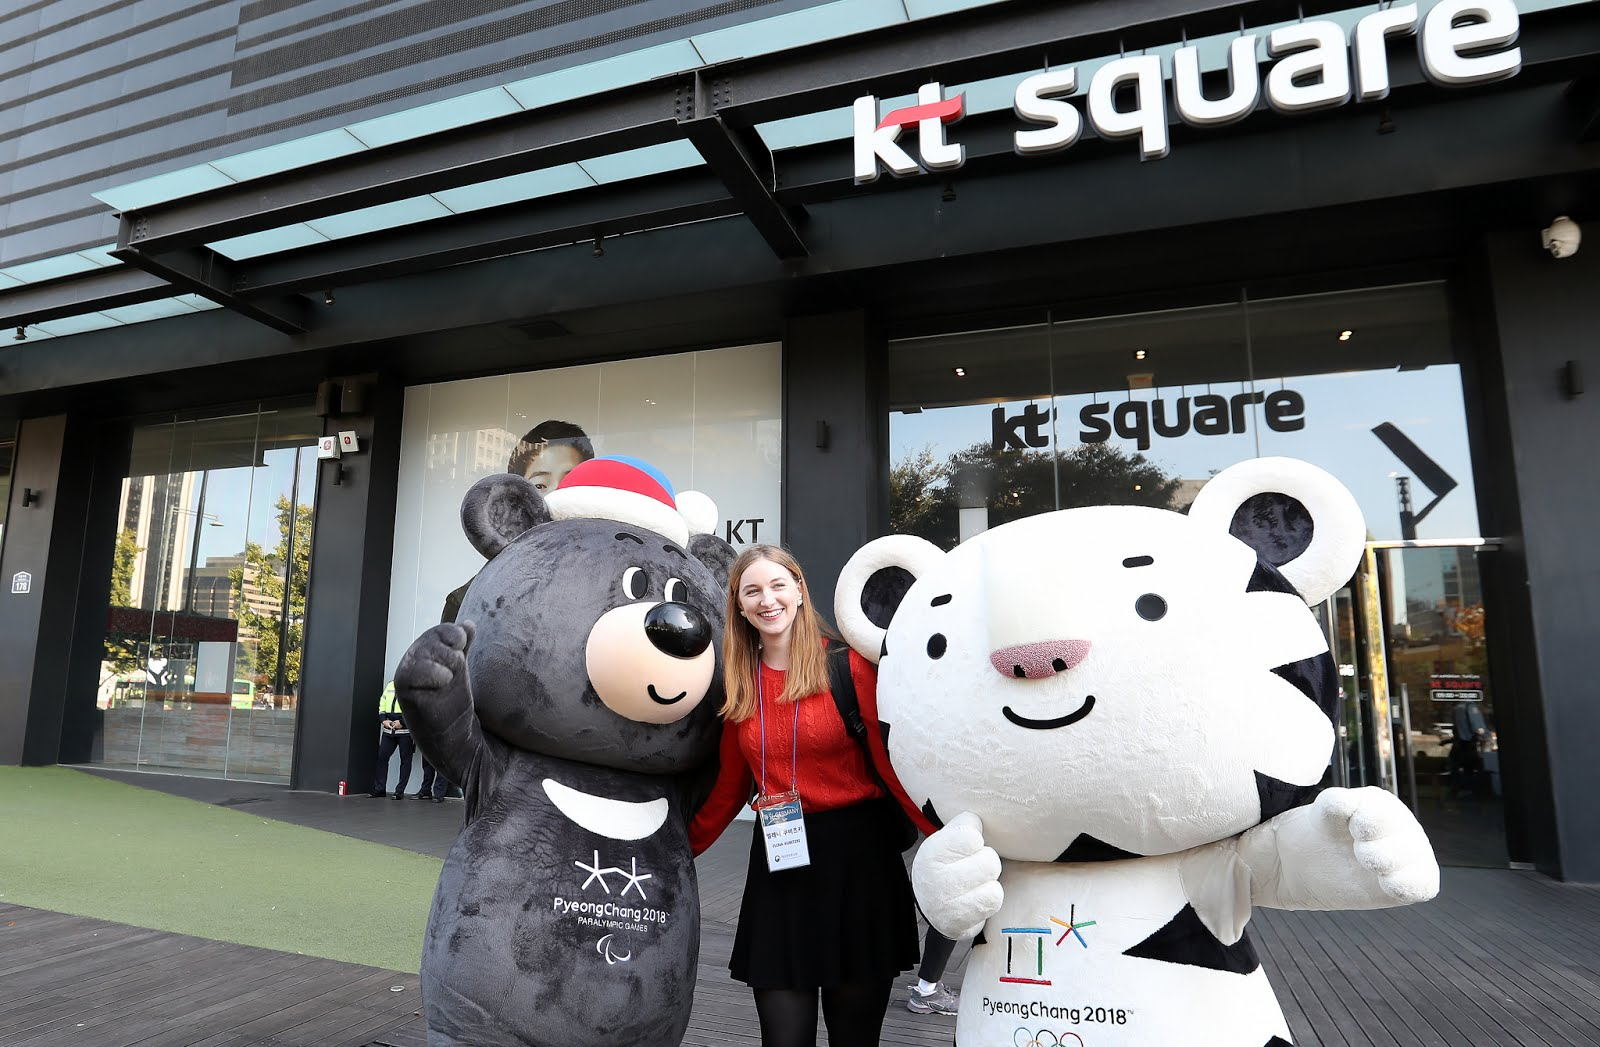 Honorary reporter Elena Kubitzki from Germany poses a smile along with Bandabi and Soohorang, the mascots of PyeongChang 2018 Winter Olympics and Paralympics.